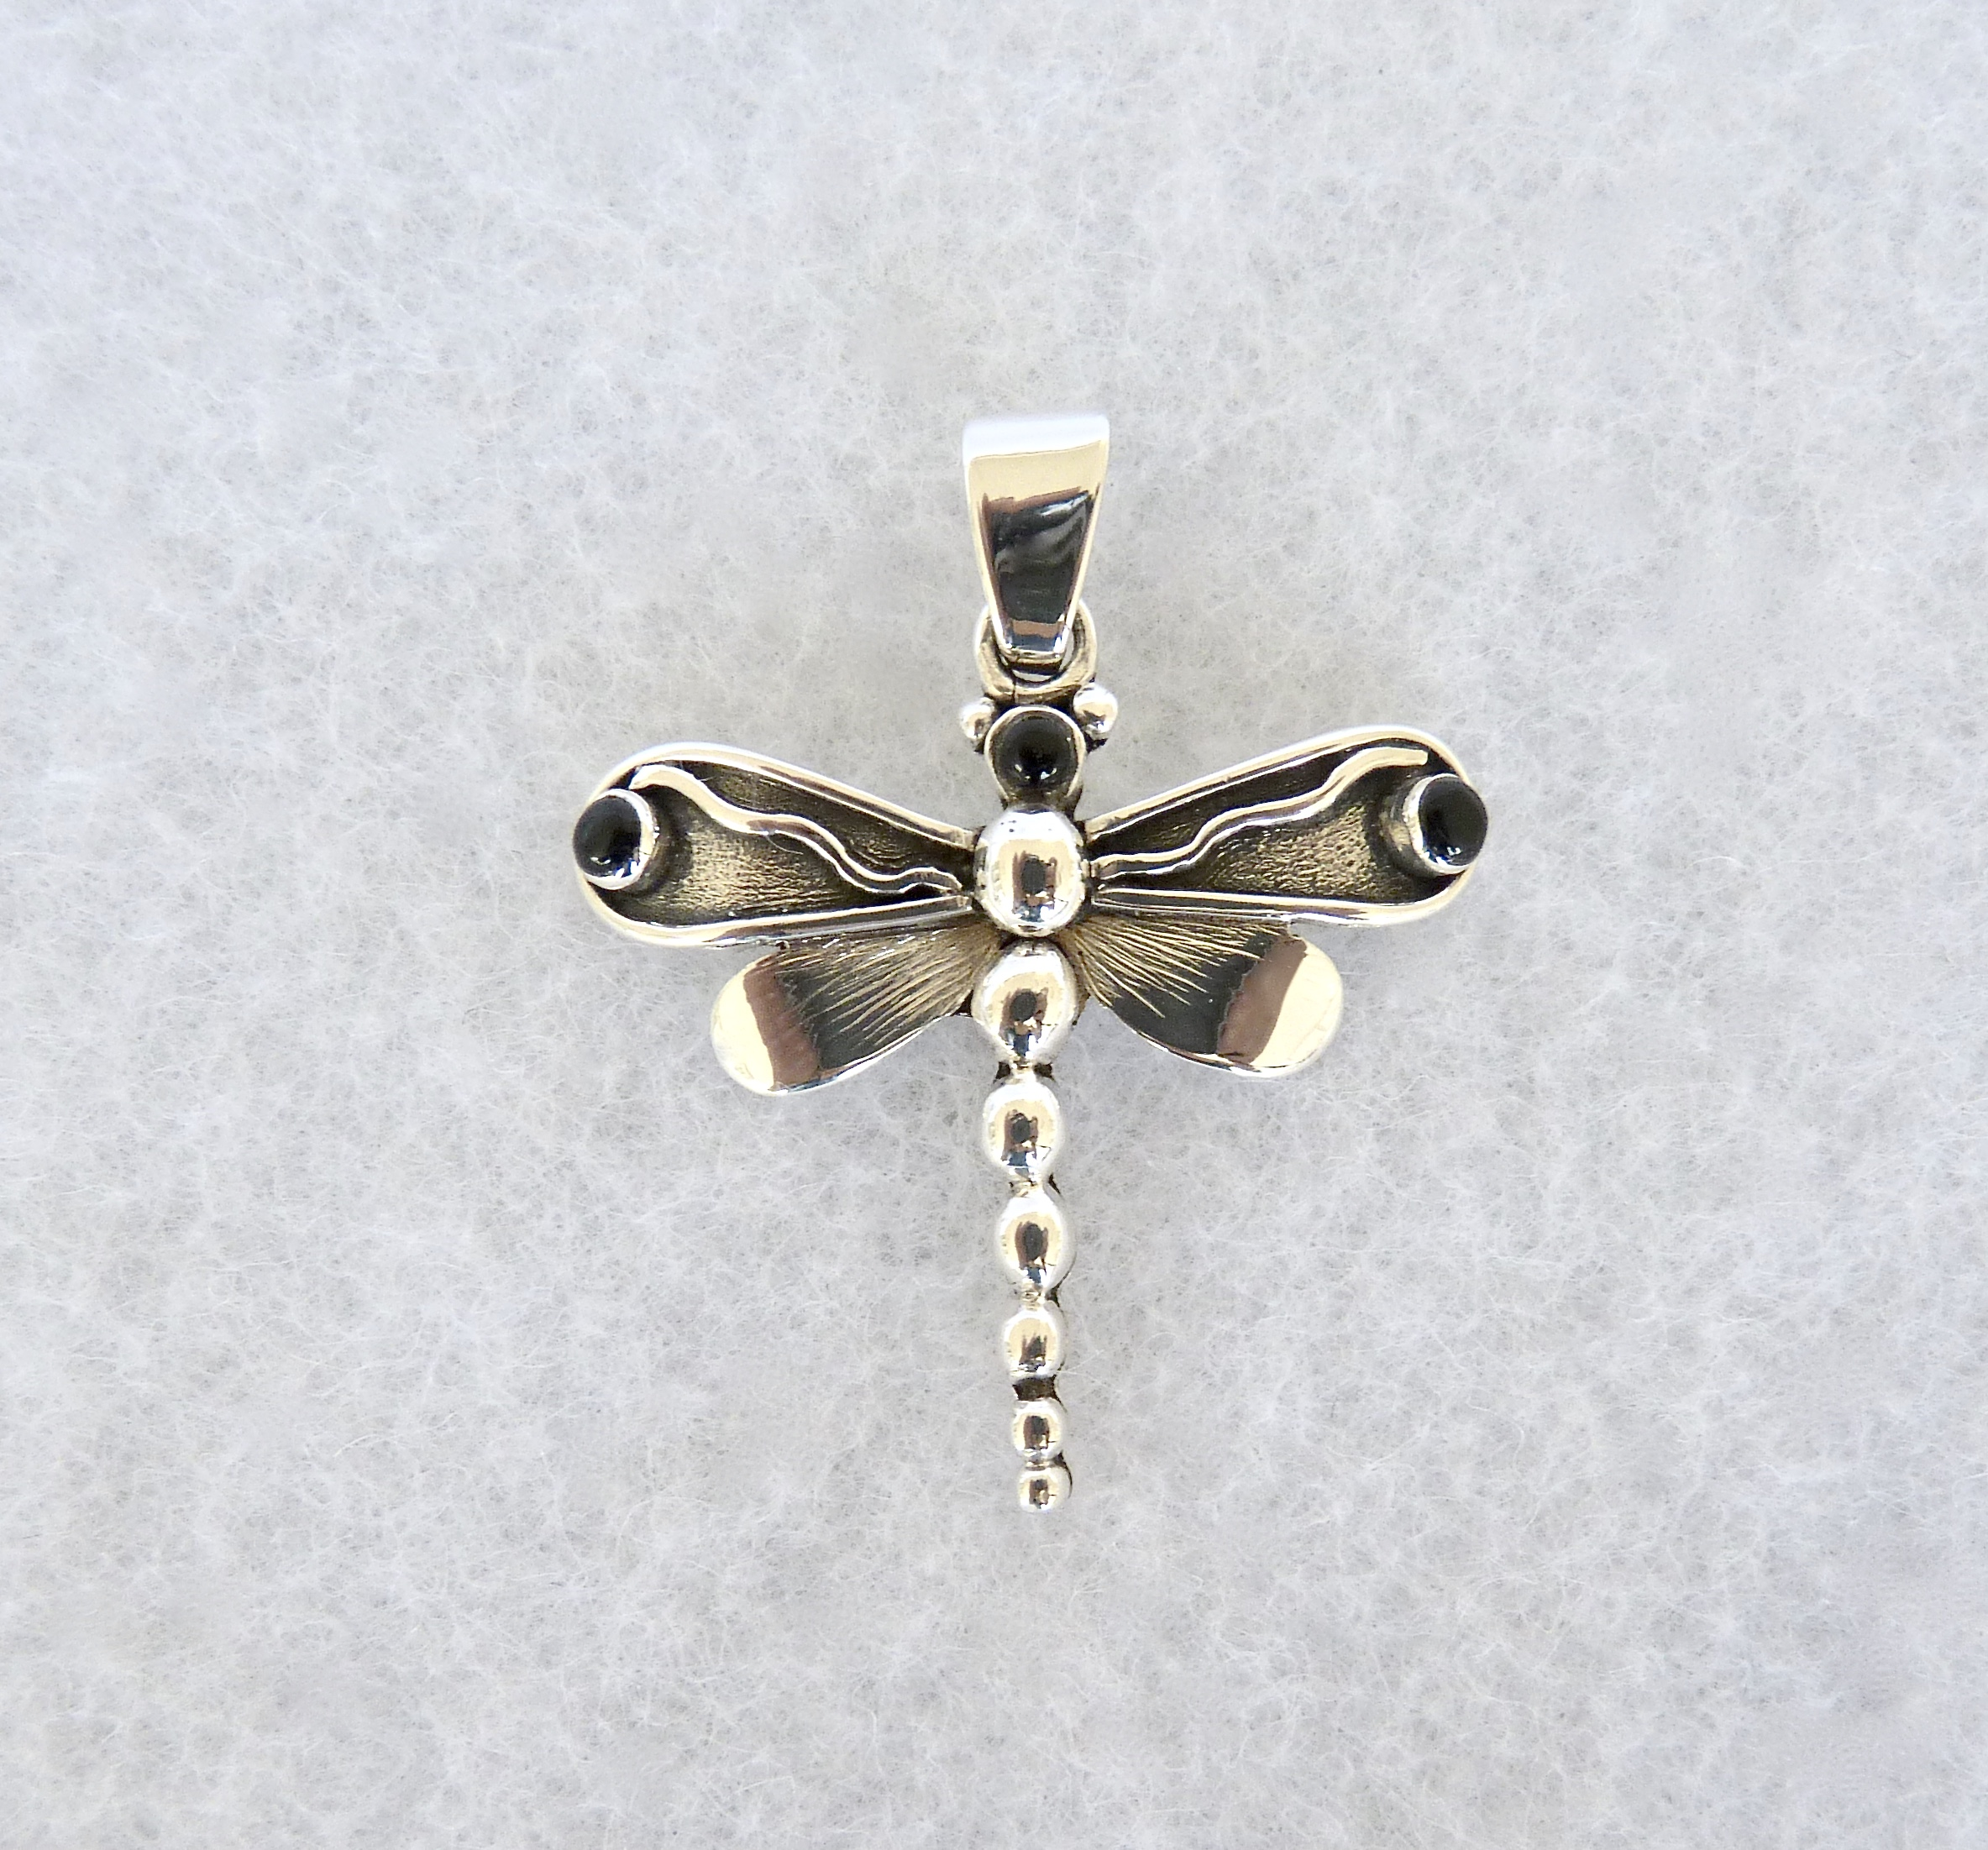 pendant silver dragonfly black diamond products shop abac uk online necklace sterling miadora spo